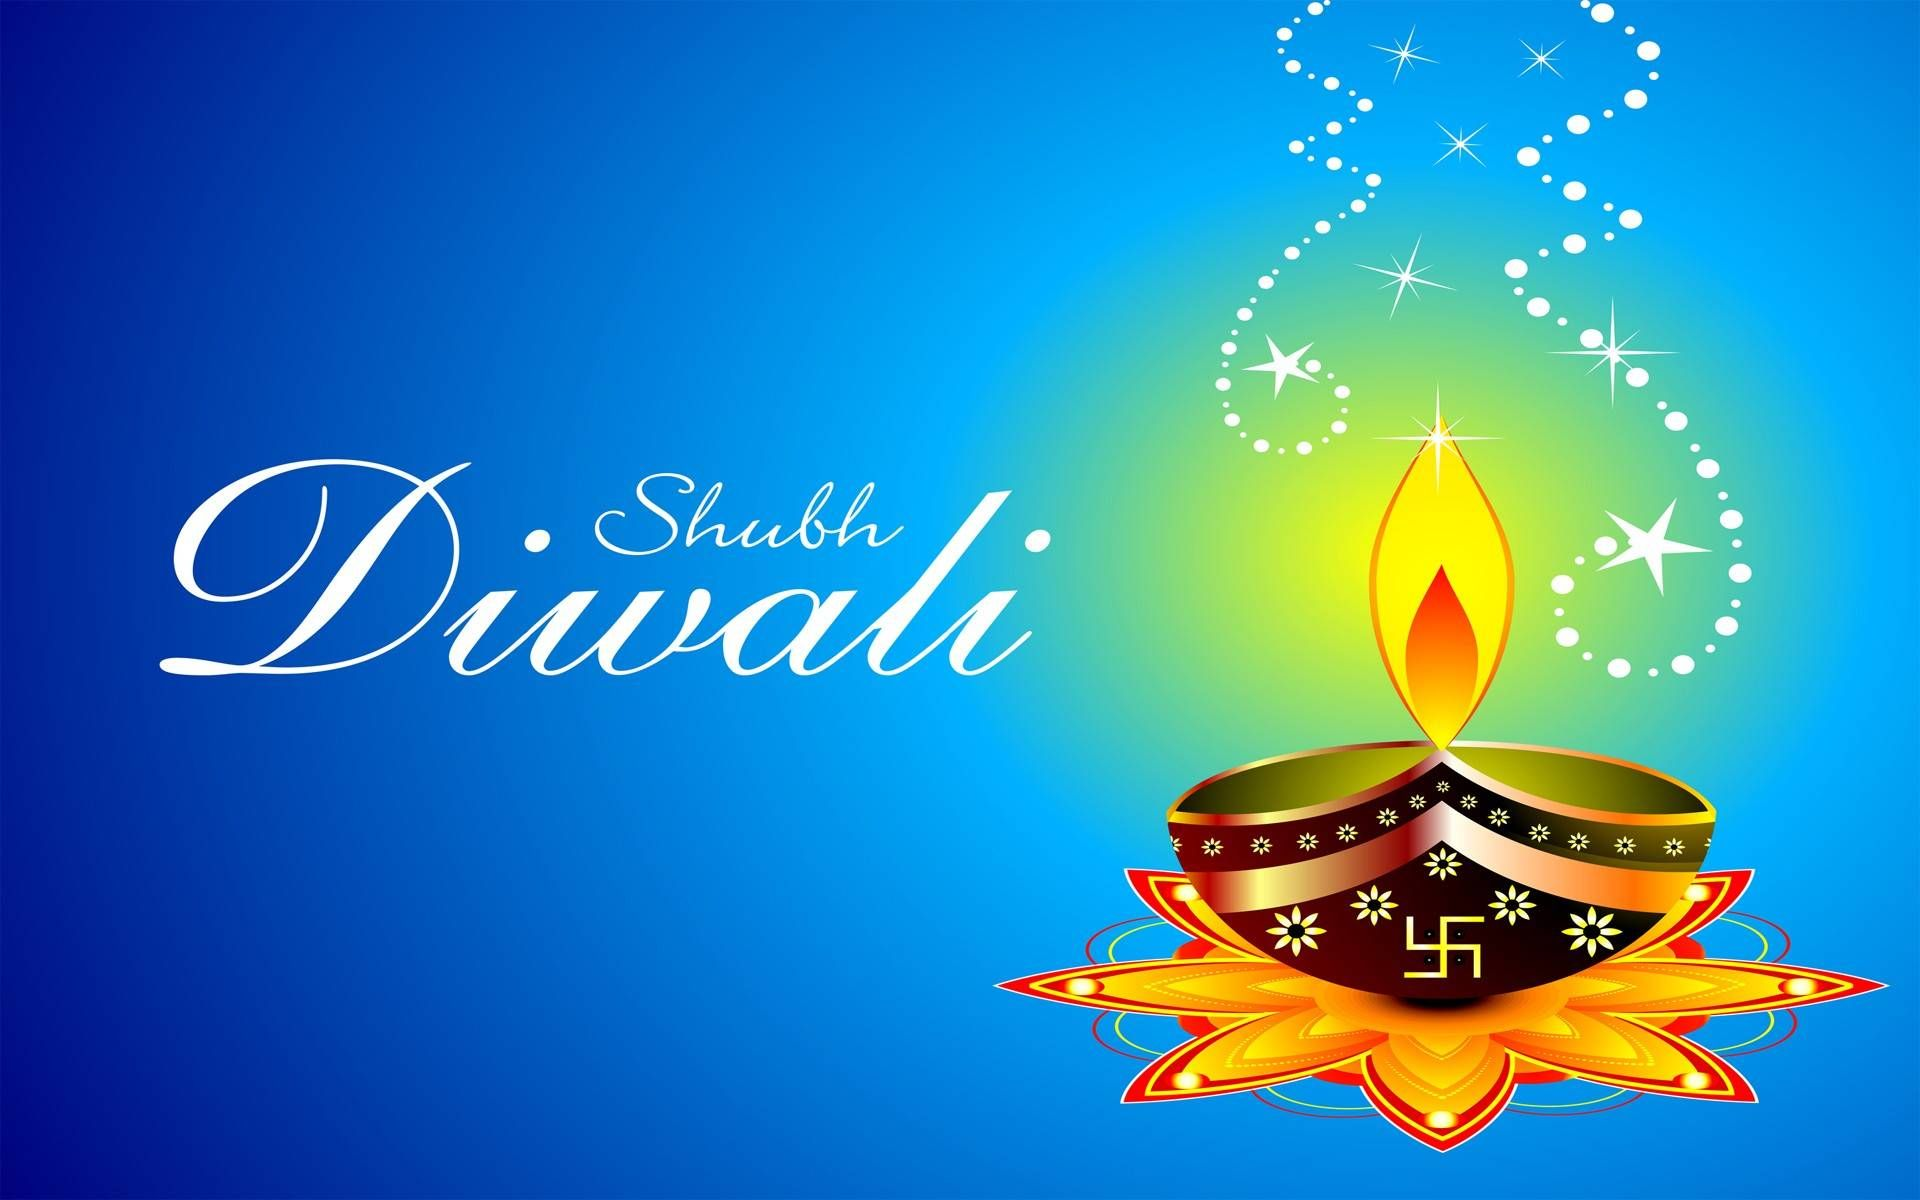 Download free 2015 happy diwali wallpapers and images httpwww download free 2015 happy diwali wallpapers and images httphappydiwali2u kristyandbryce Images